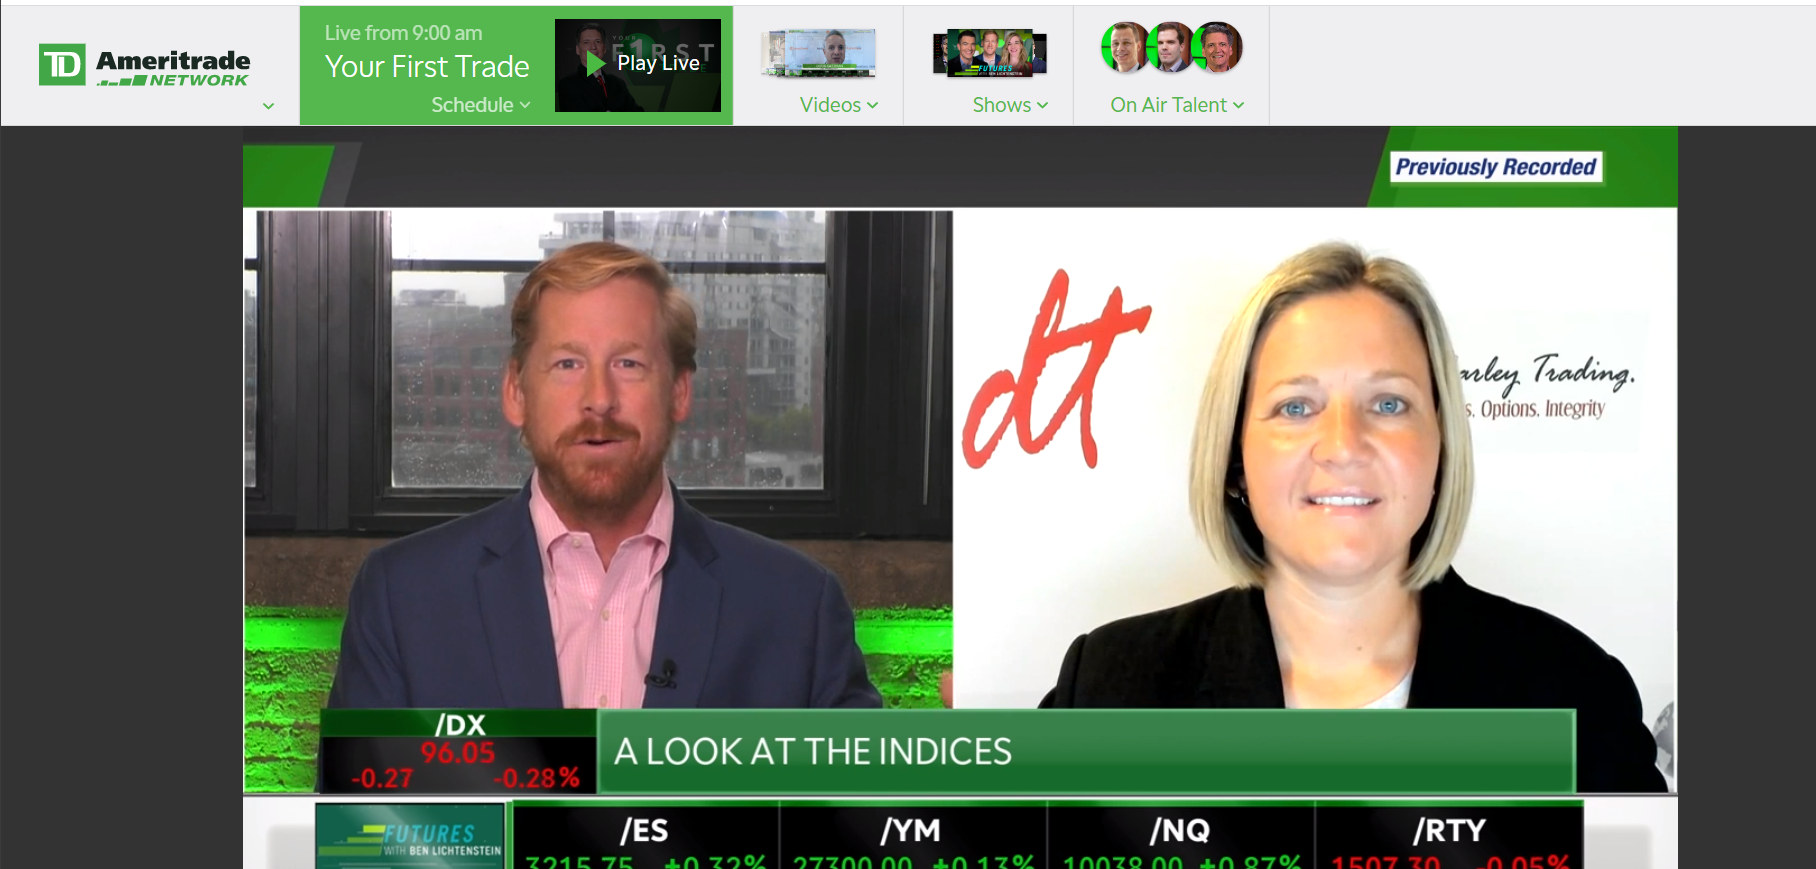 TD Ameritrade Network Futures Market and Fed Analysis with Futures Broker Carley Garner